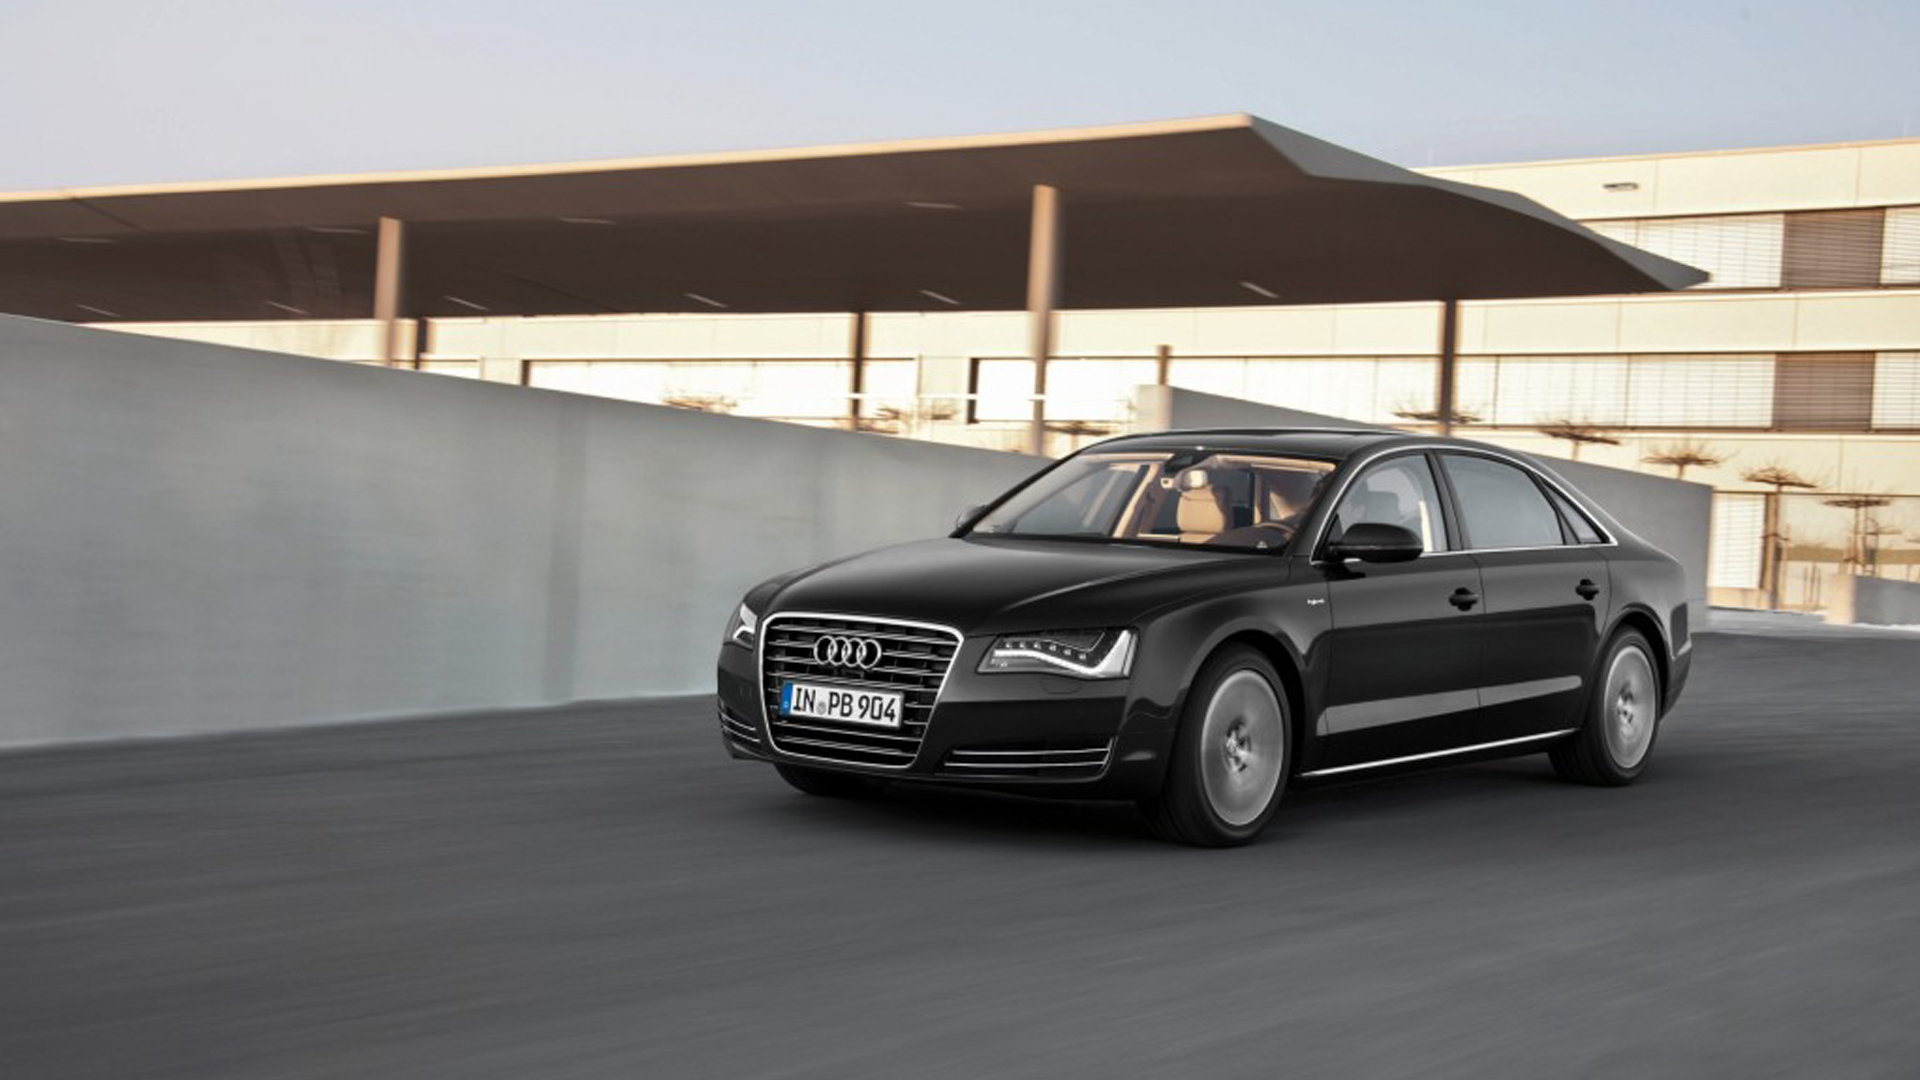 2013 Audi A8 (View 1 of 6)